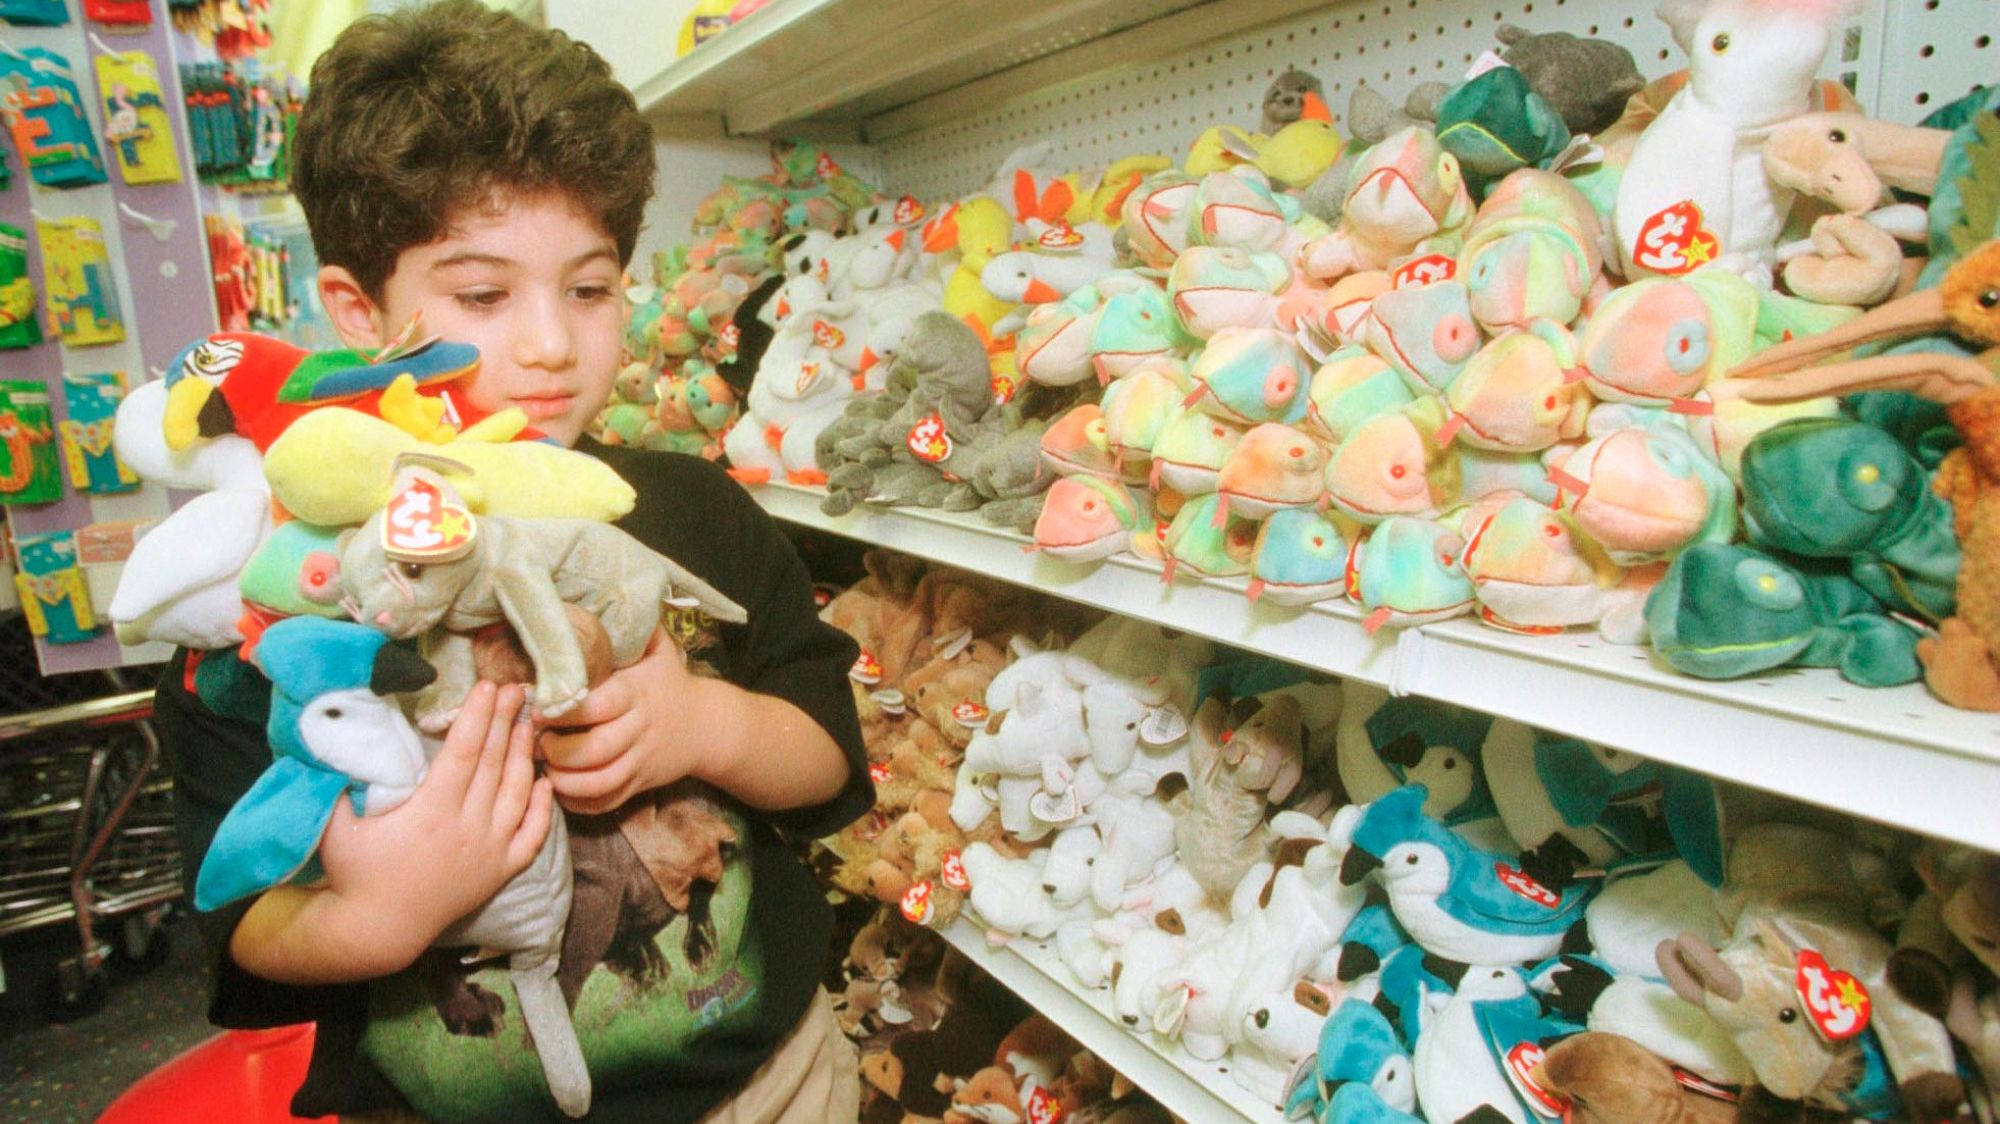 A $50,000 Beanie Baby? See What Your Beloved '90s Toys Are Worth With This Interactive Chart